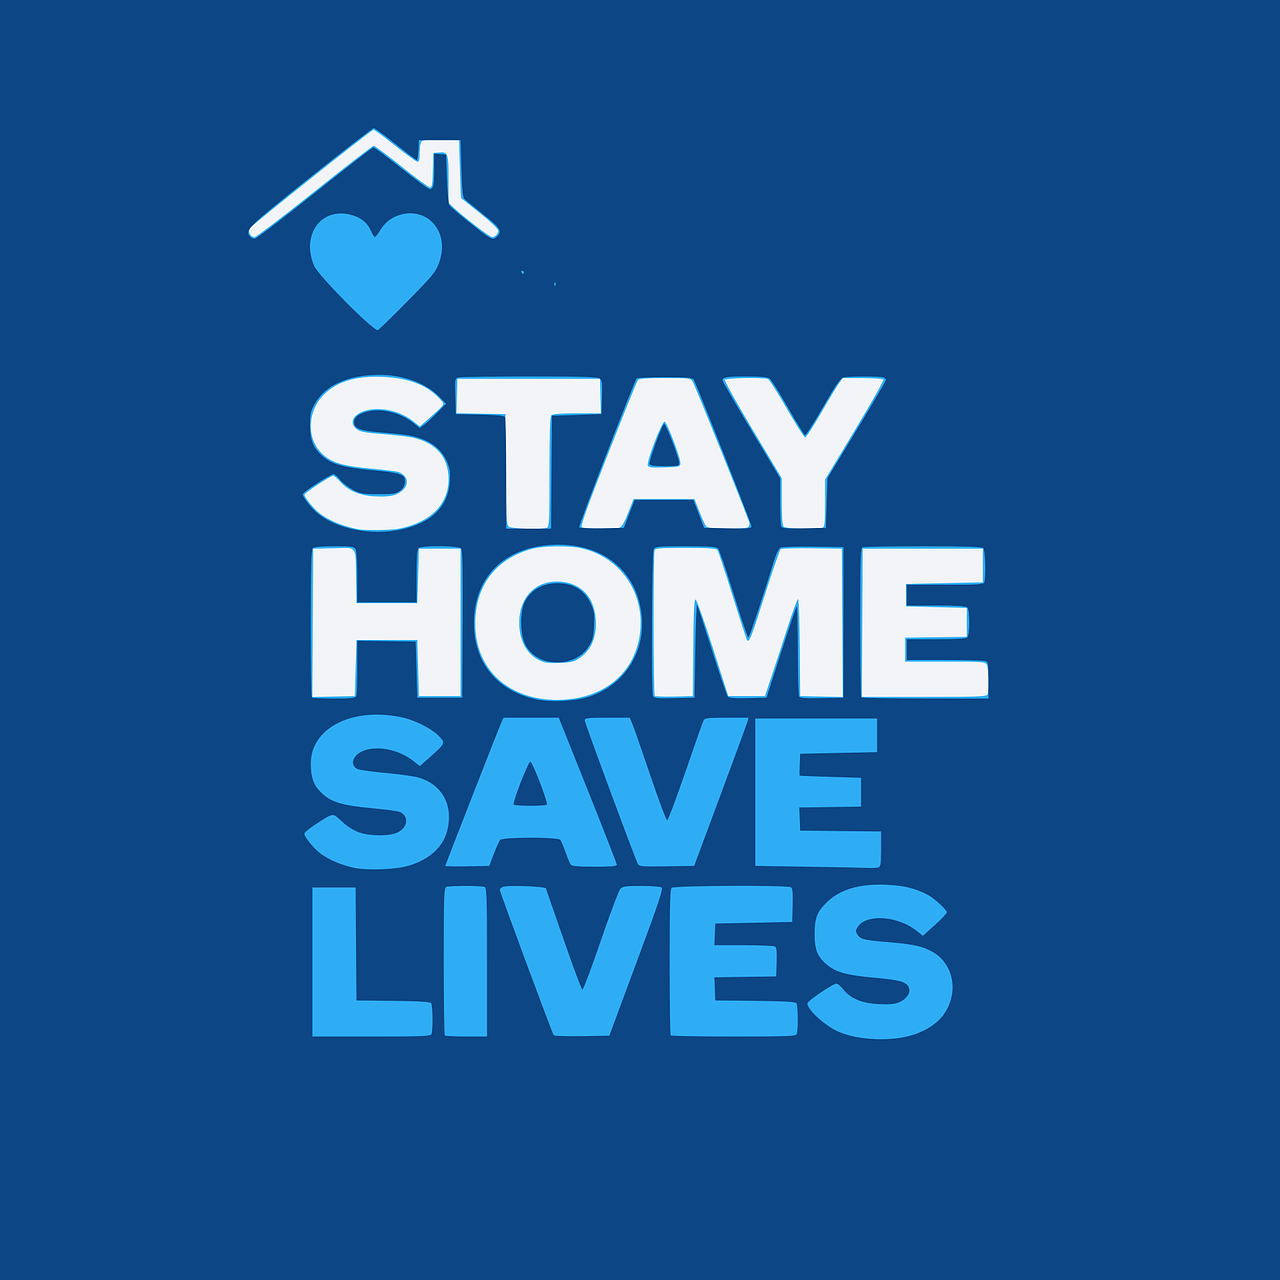 stay-home-save-lives-4983843_1280